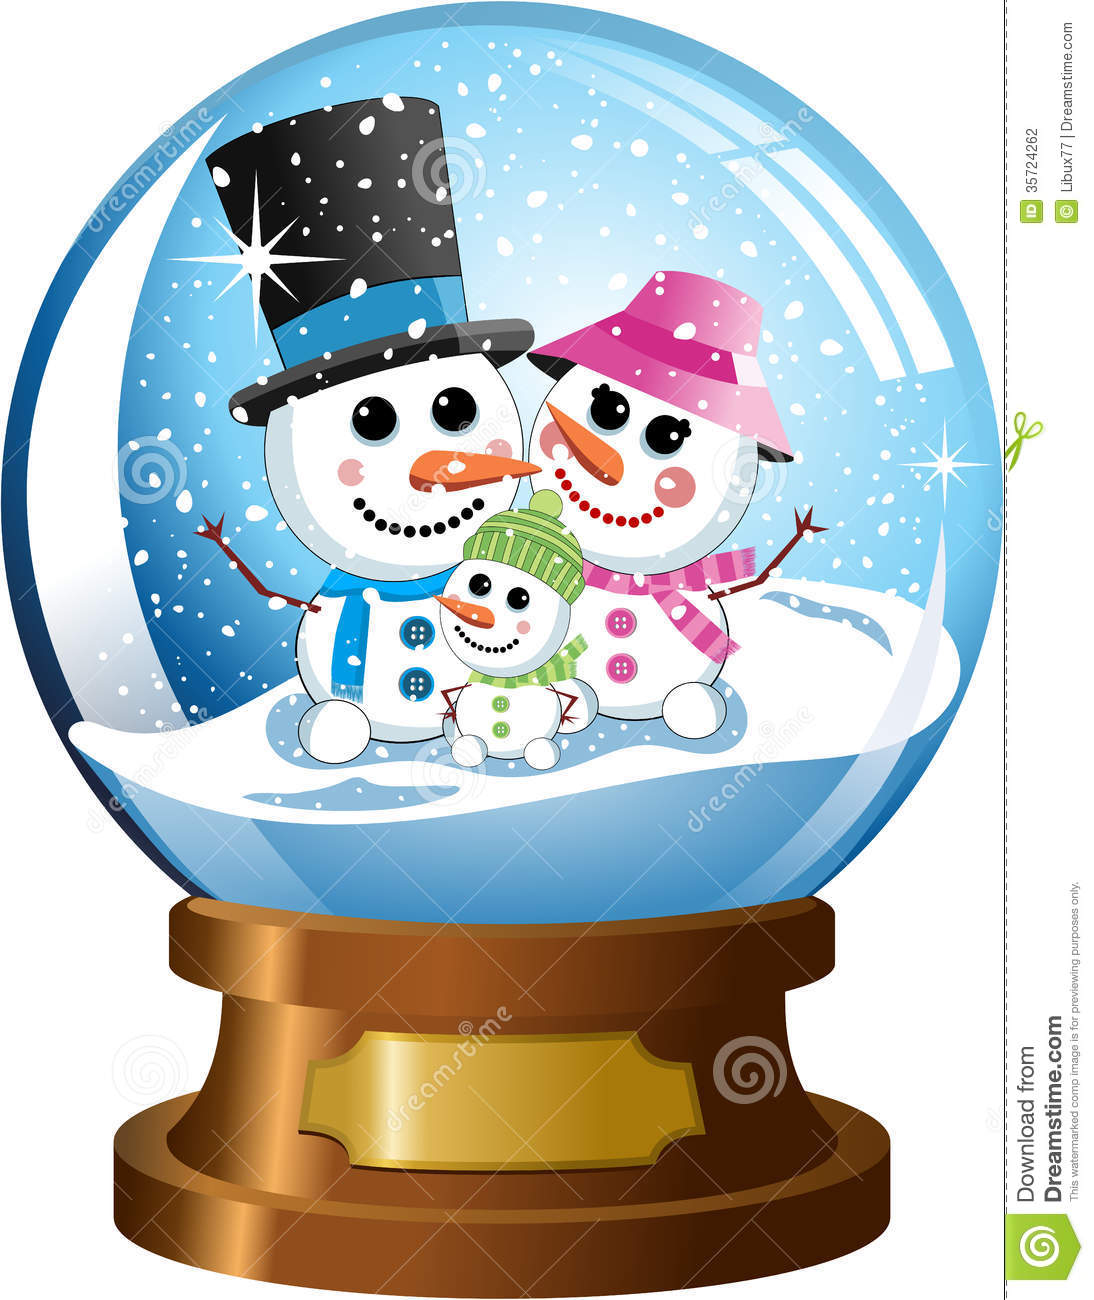 Snowglobe With Happy Snowman Family Under Snowfall